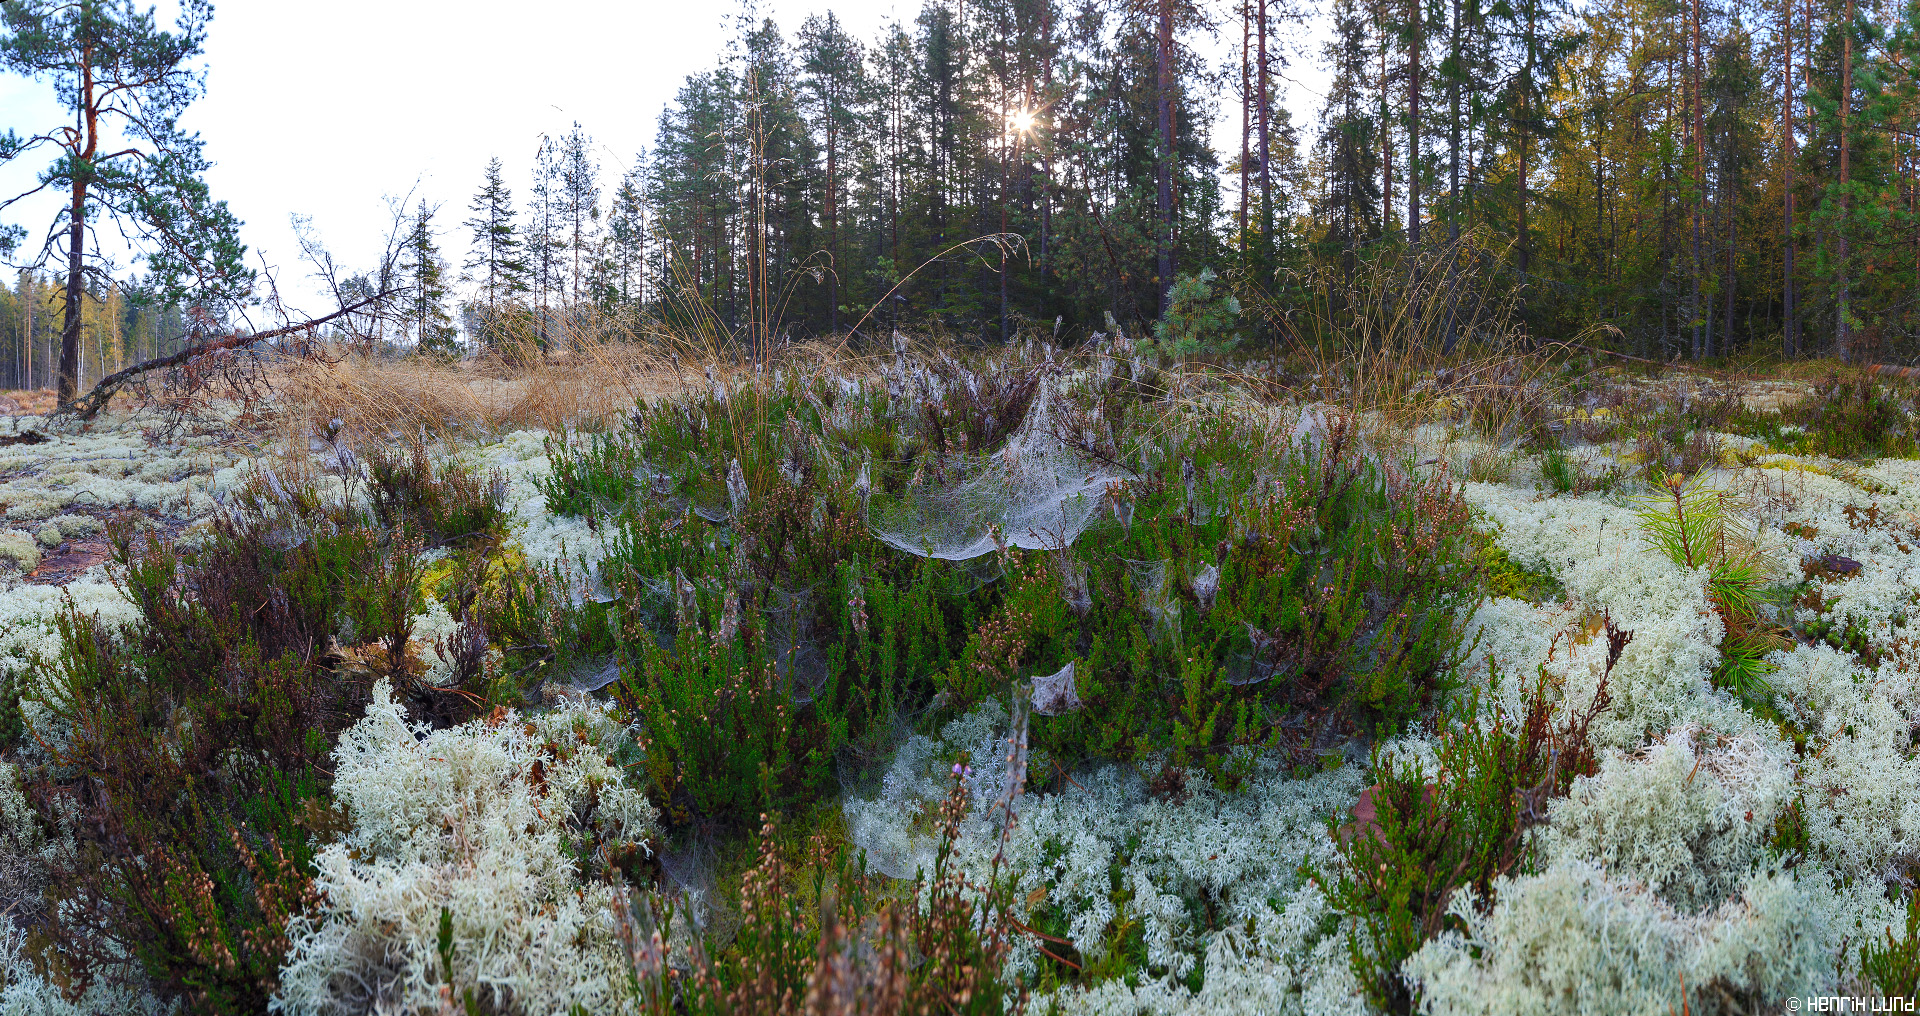 Morning dew in the autumn forest. Norrby, Lappträsk, Finland, September 2014.